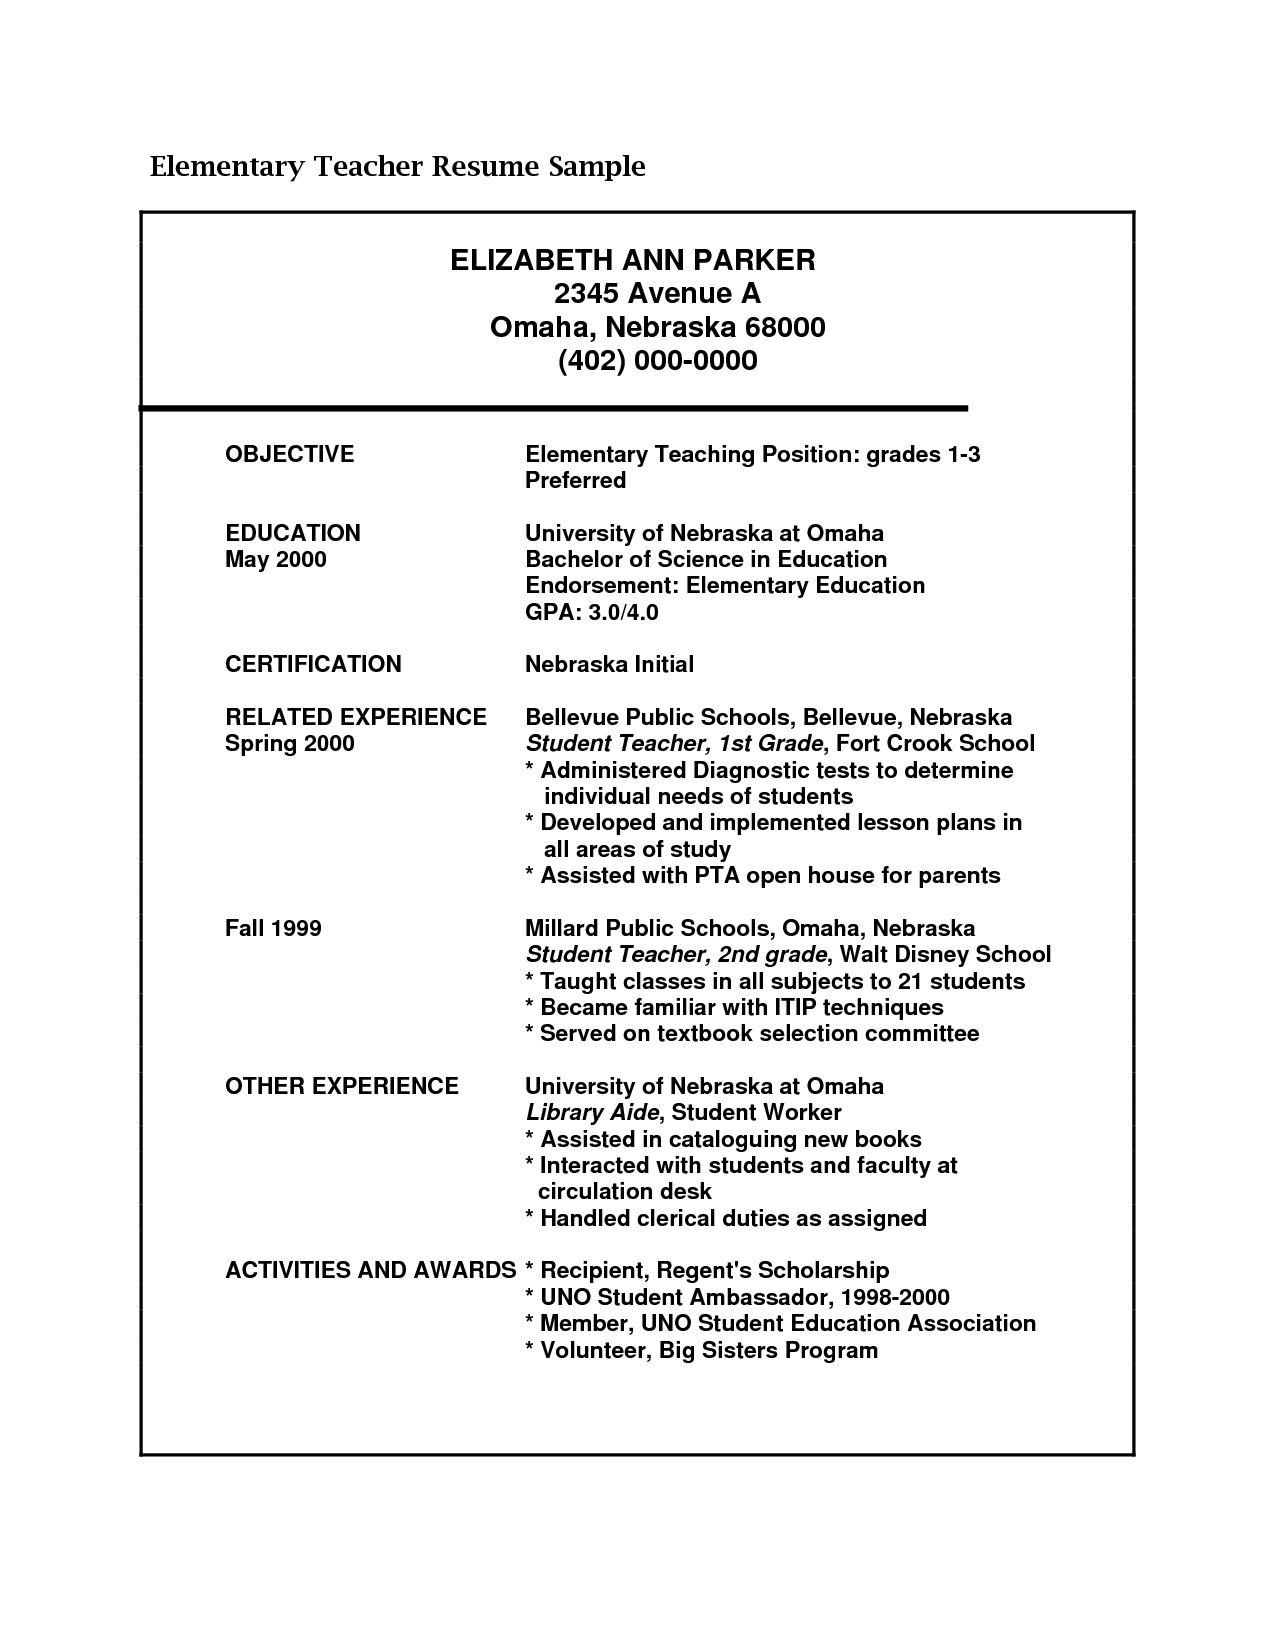 Homework Help How To Write A Resume For A Teaching Position Book Review:  Politics, Health And Healthcare: Selected Essays   Nature  Resume Examples For Teachers